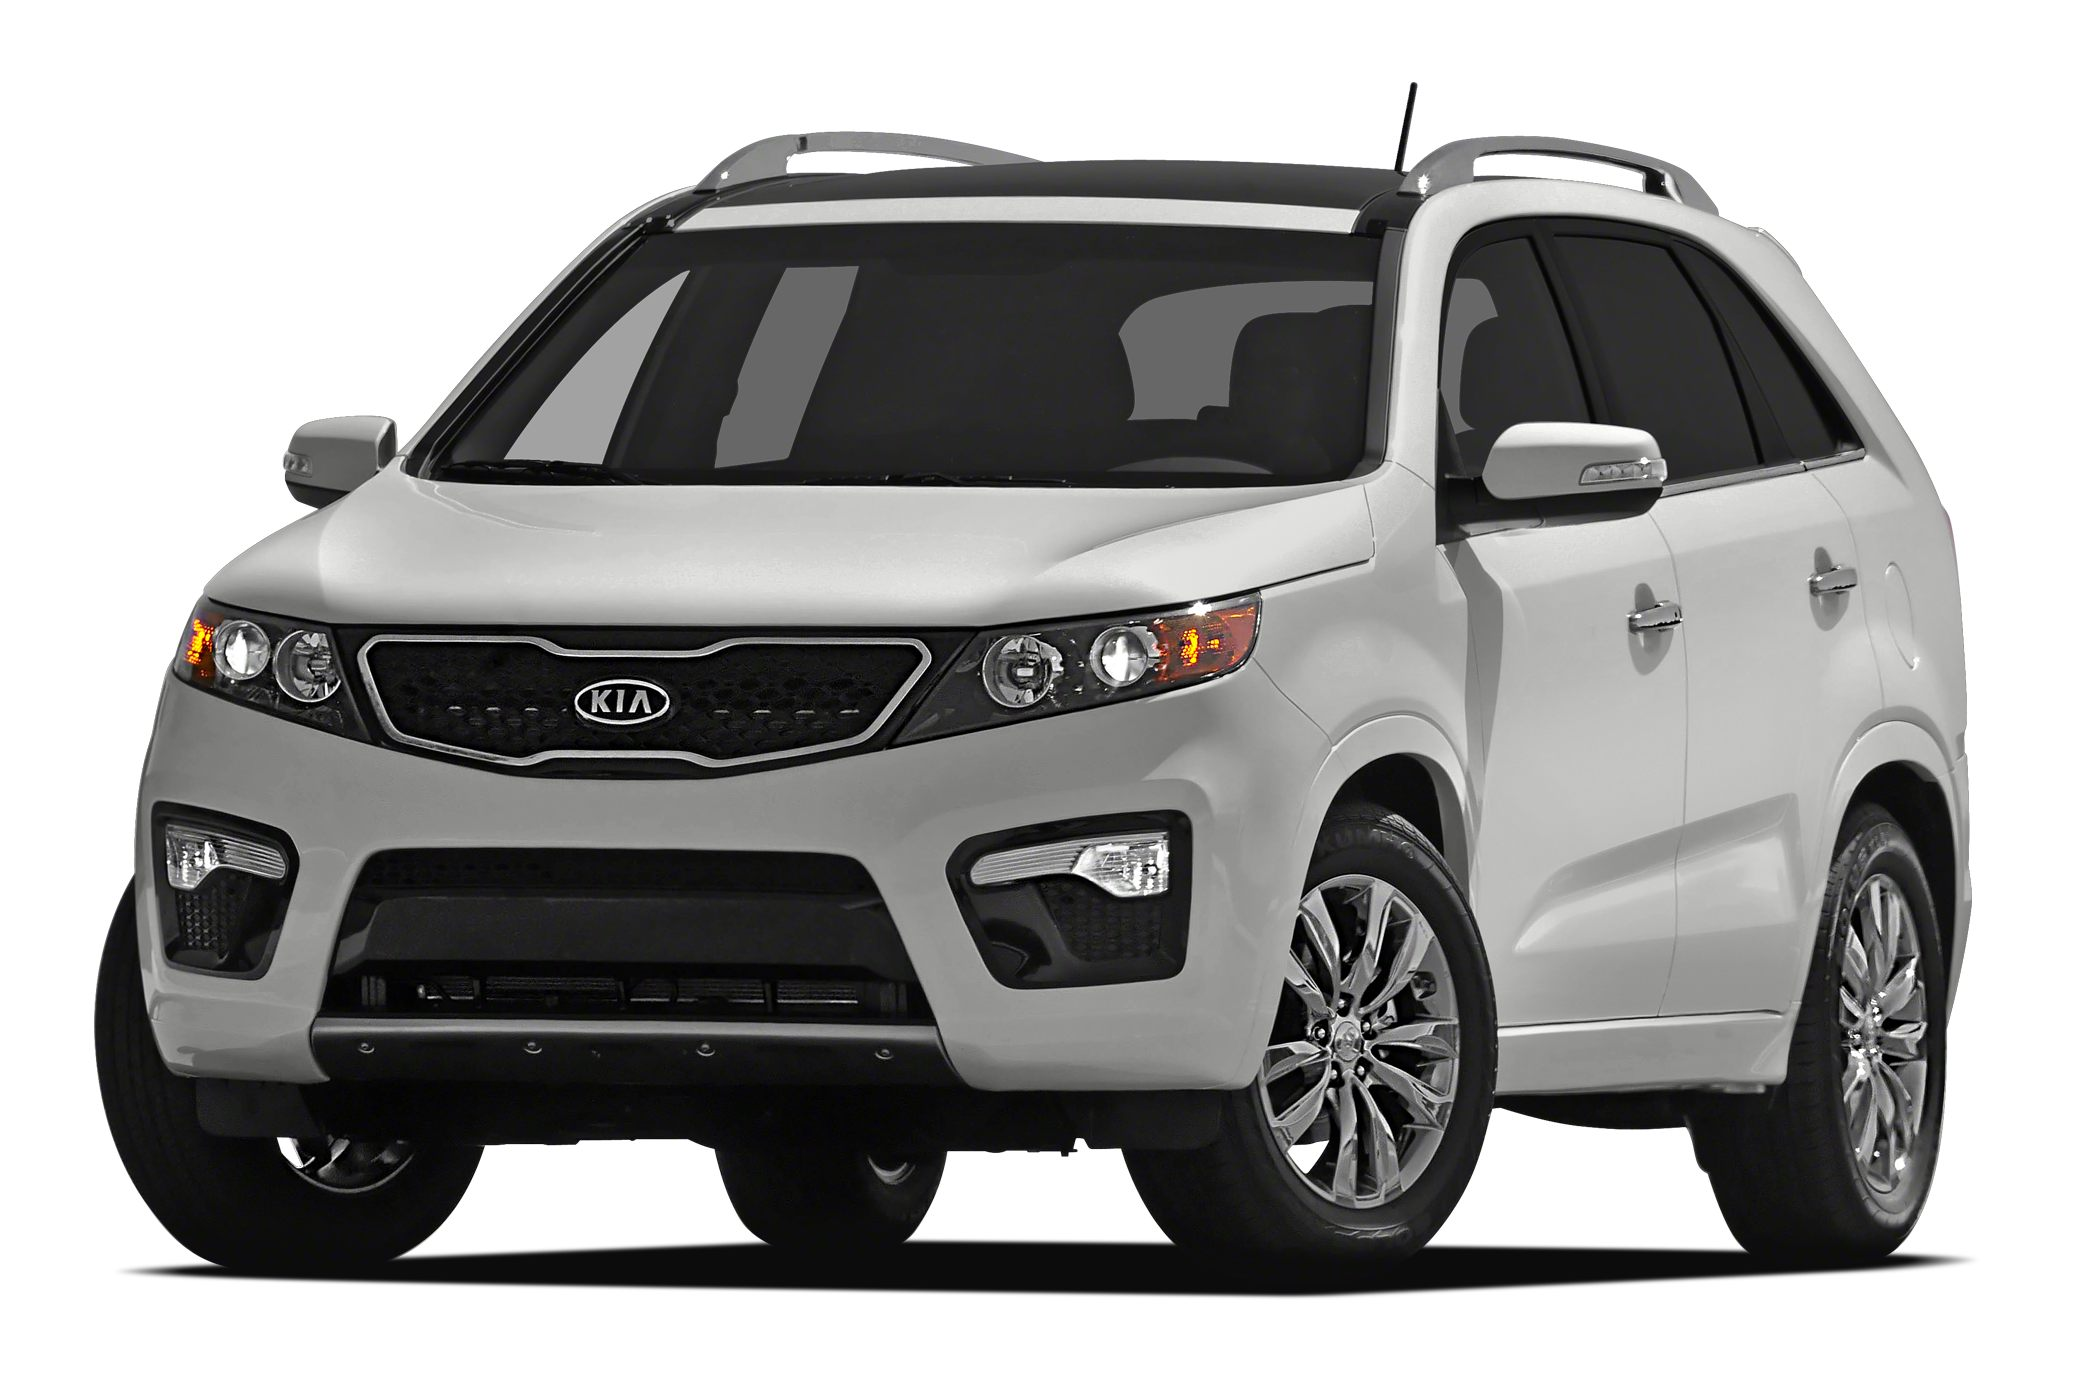 2013 Kia Sorento SX SUV for sale in Warner Robins for $22,995 with 53,035 miles.